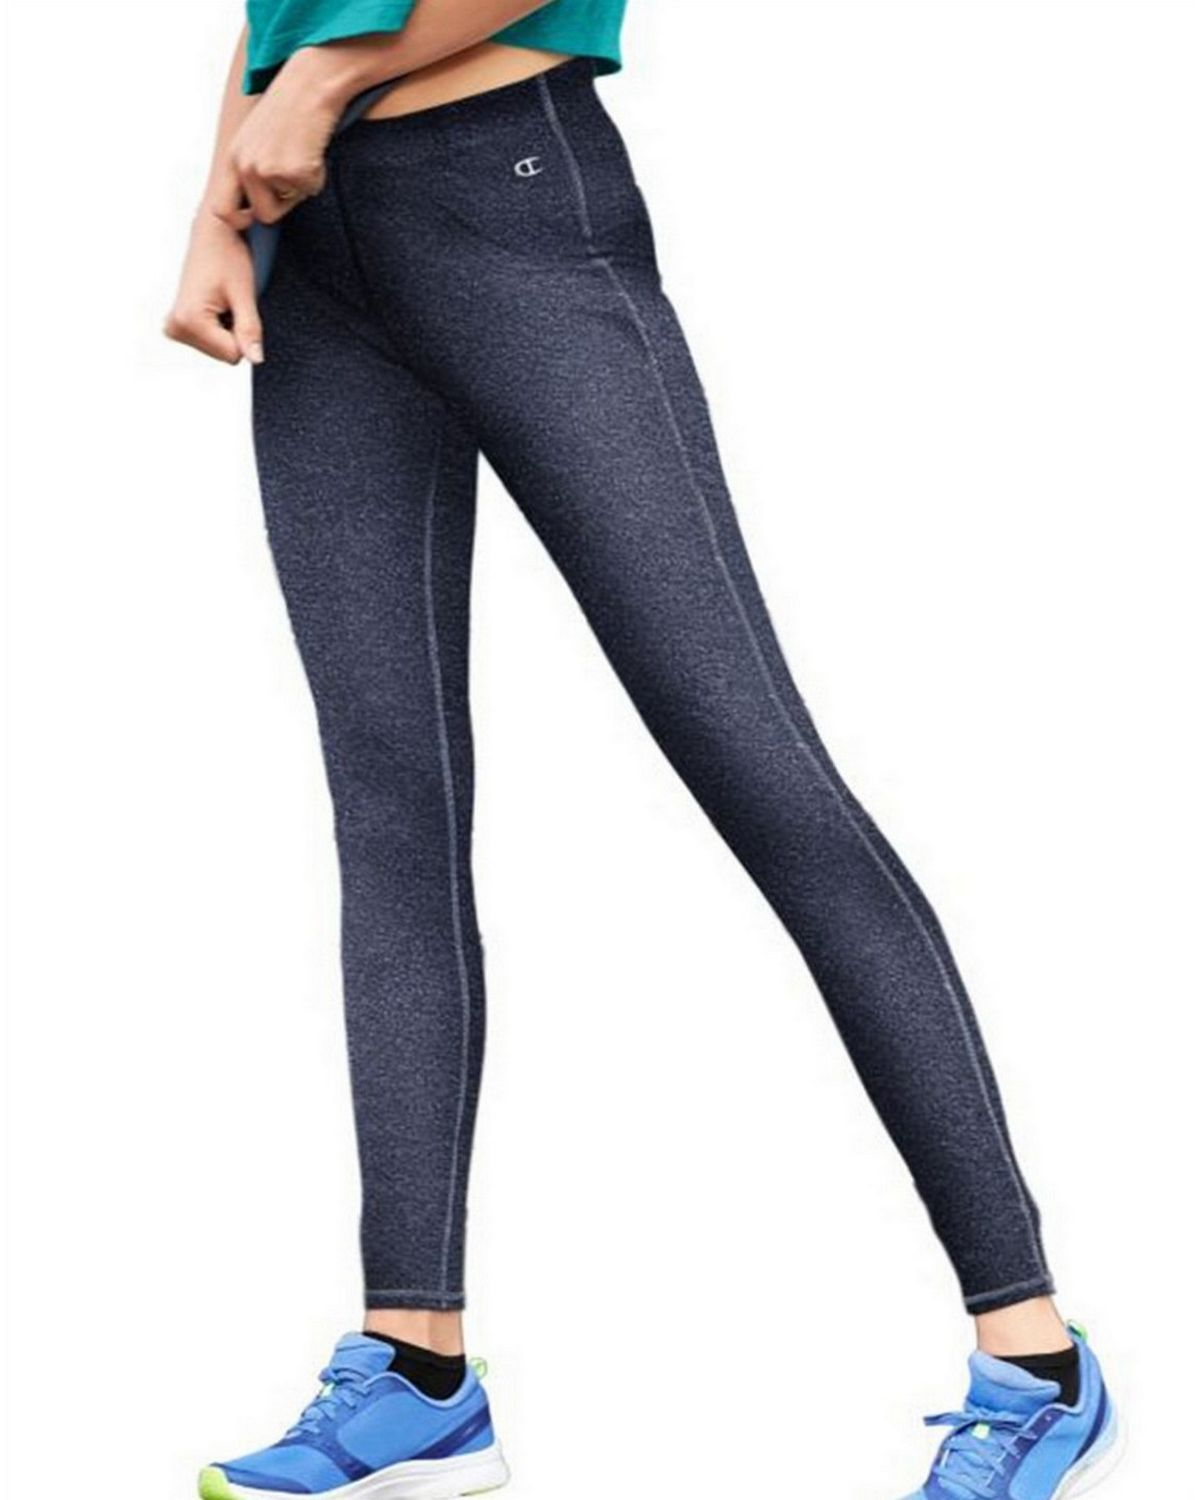 Champion M8877 Womens Tight - Granite Heather - M M8877